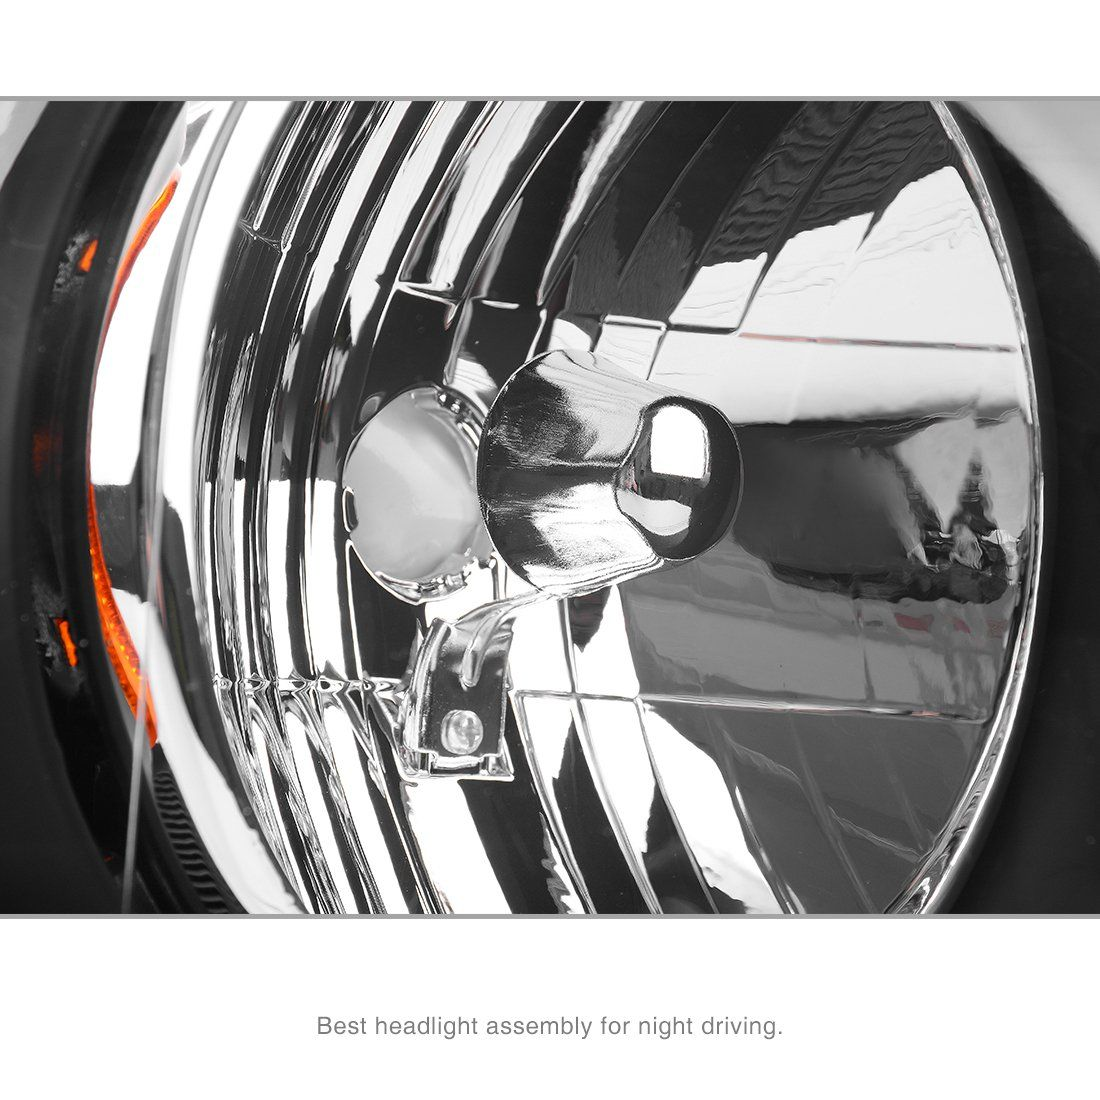 For Ford F150 Pickup 2004 2008 Headlight Black Housing Amber Reflector Clear Lens Passenger Ford F150 Pickup Ford F150 Reflectors